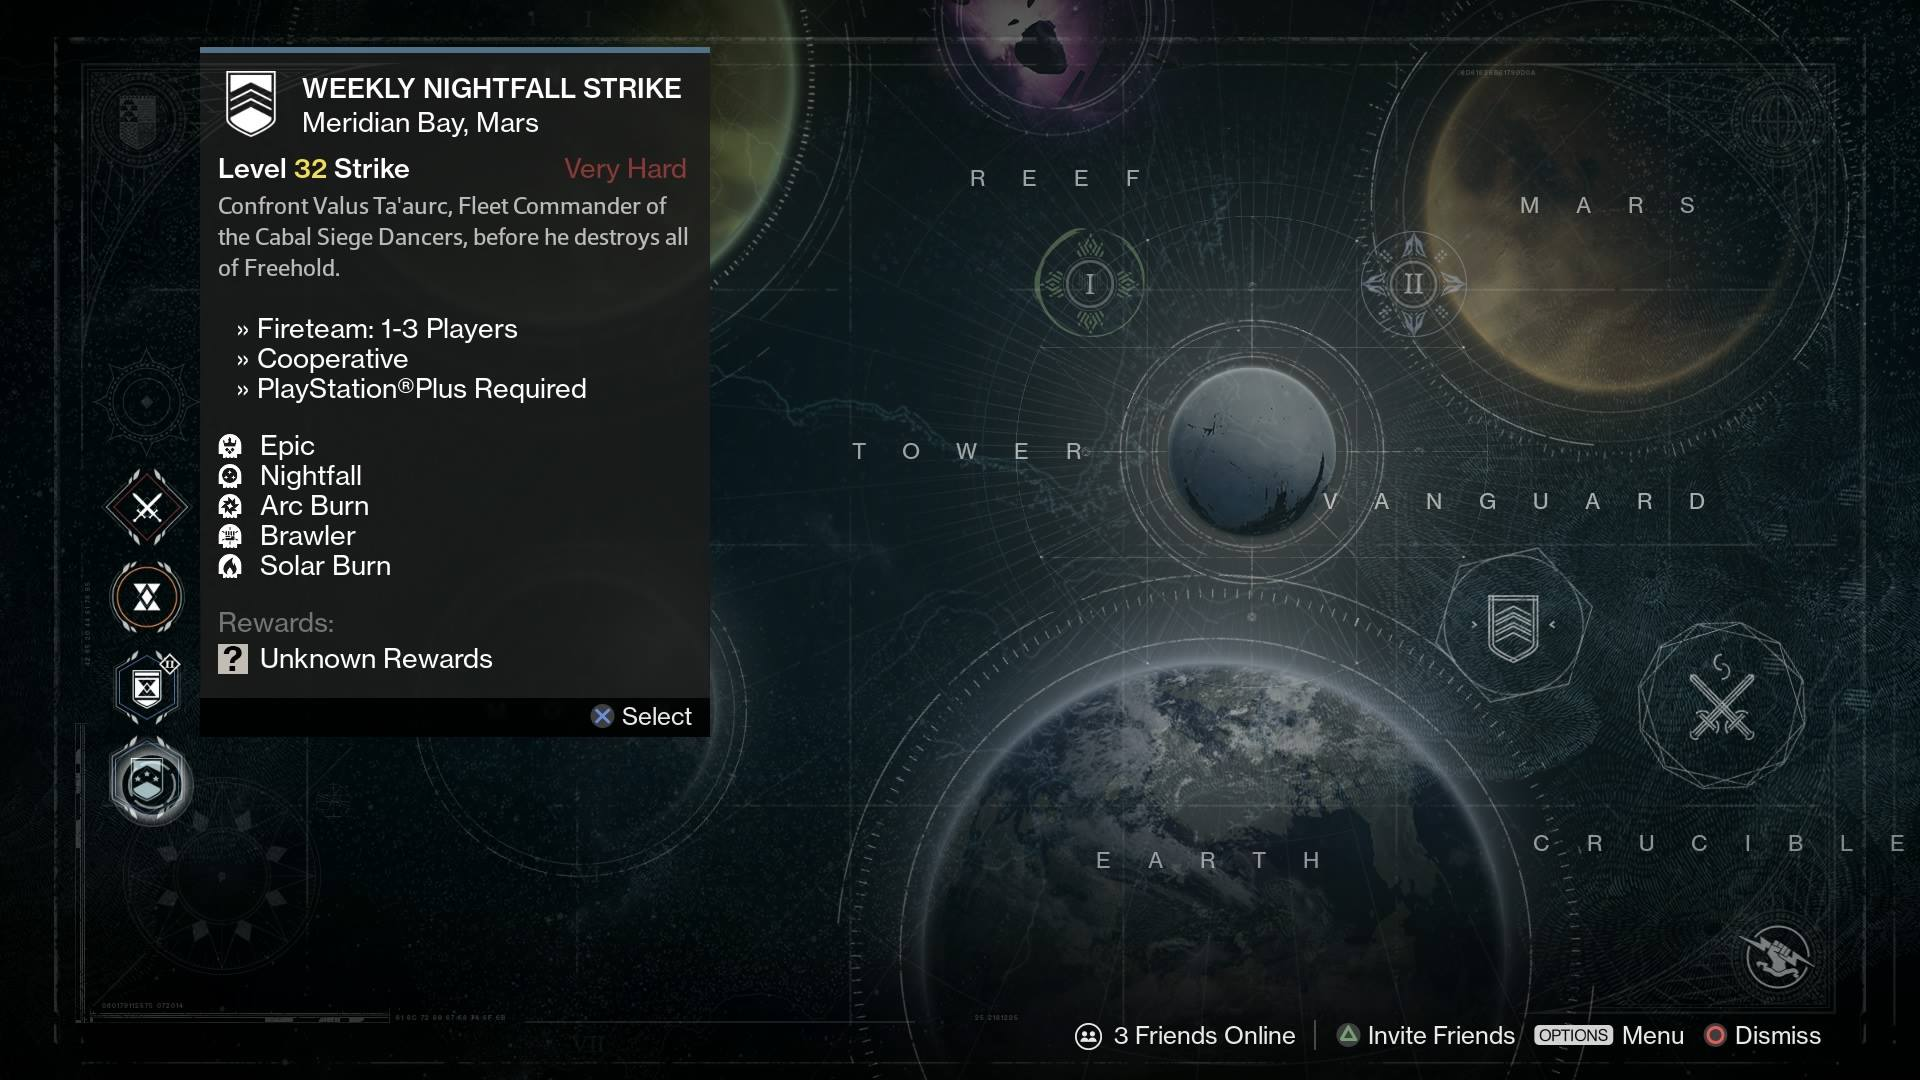 How to join matchmaking in destiny